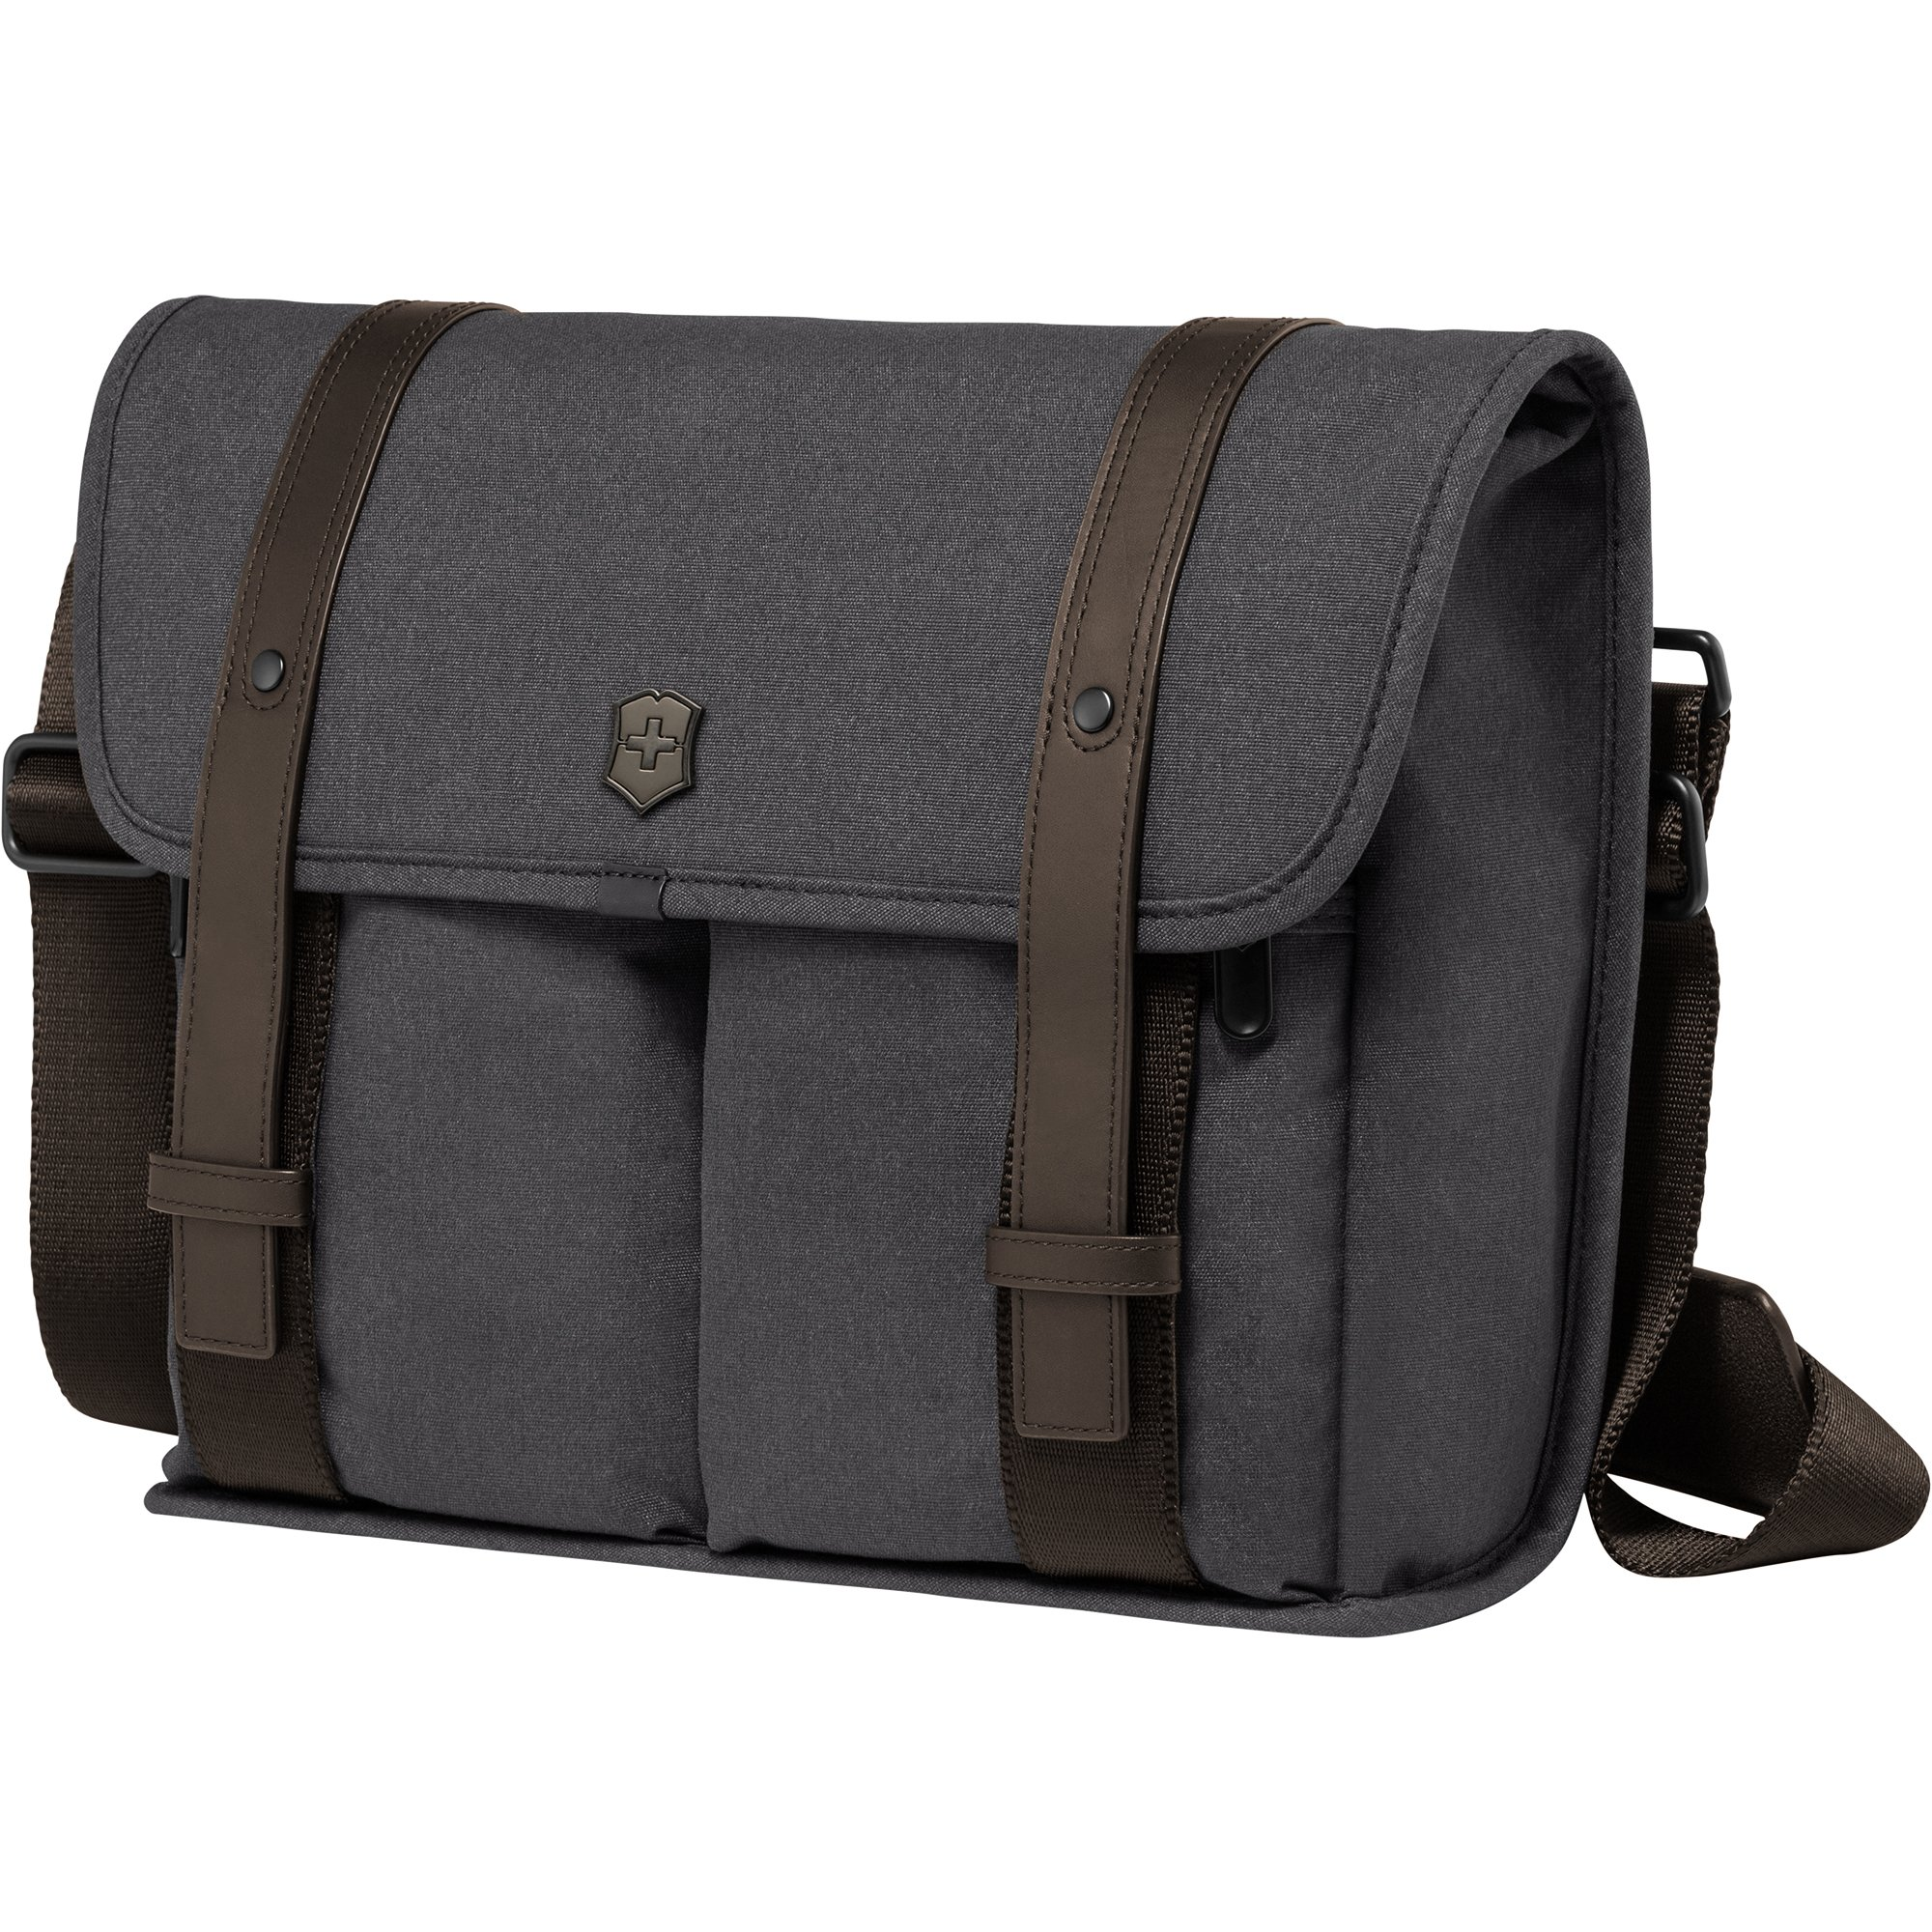 Victorinox Architecture Urban Lombard Laptop Messenger Bag, Grey/Brown, One Size by Victorinox